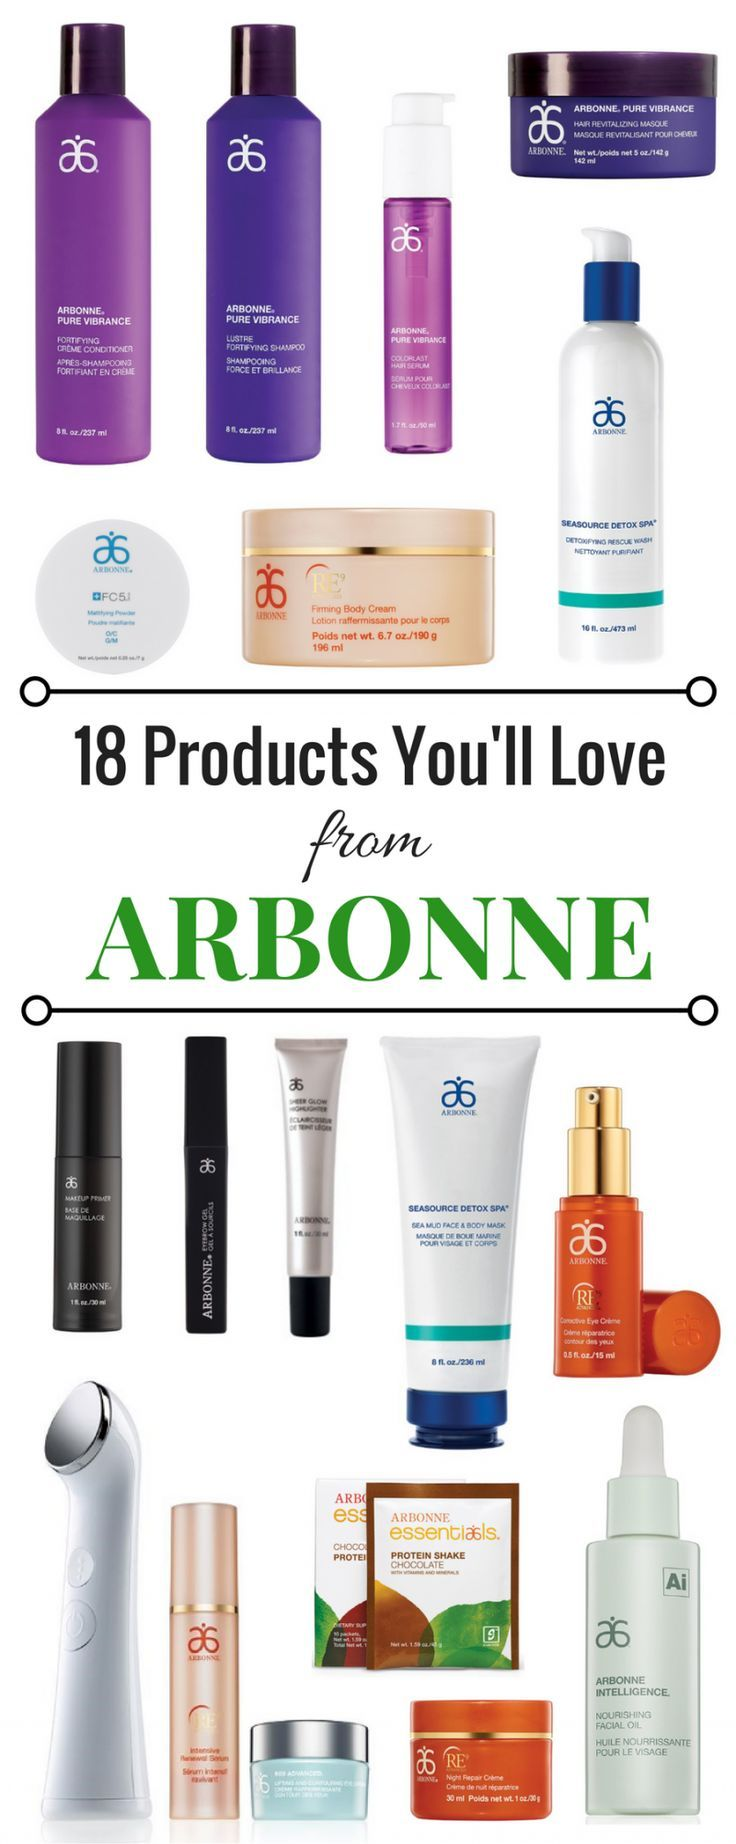 18 Products You'll Love from Arbonne | Makeup, hair, skincare (some anti-aging), bath & body, and nutrition product reviews from Arbonne's non-GMO, vegan, gluten-free, and (some) kosher products! You NEED to try these!